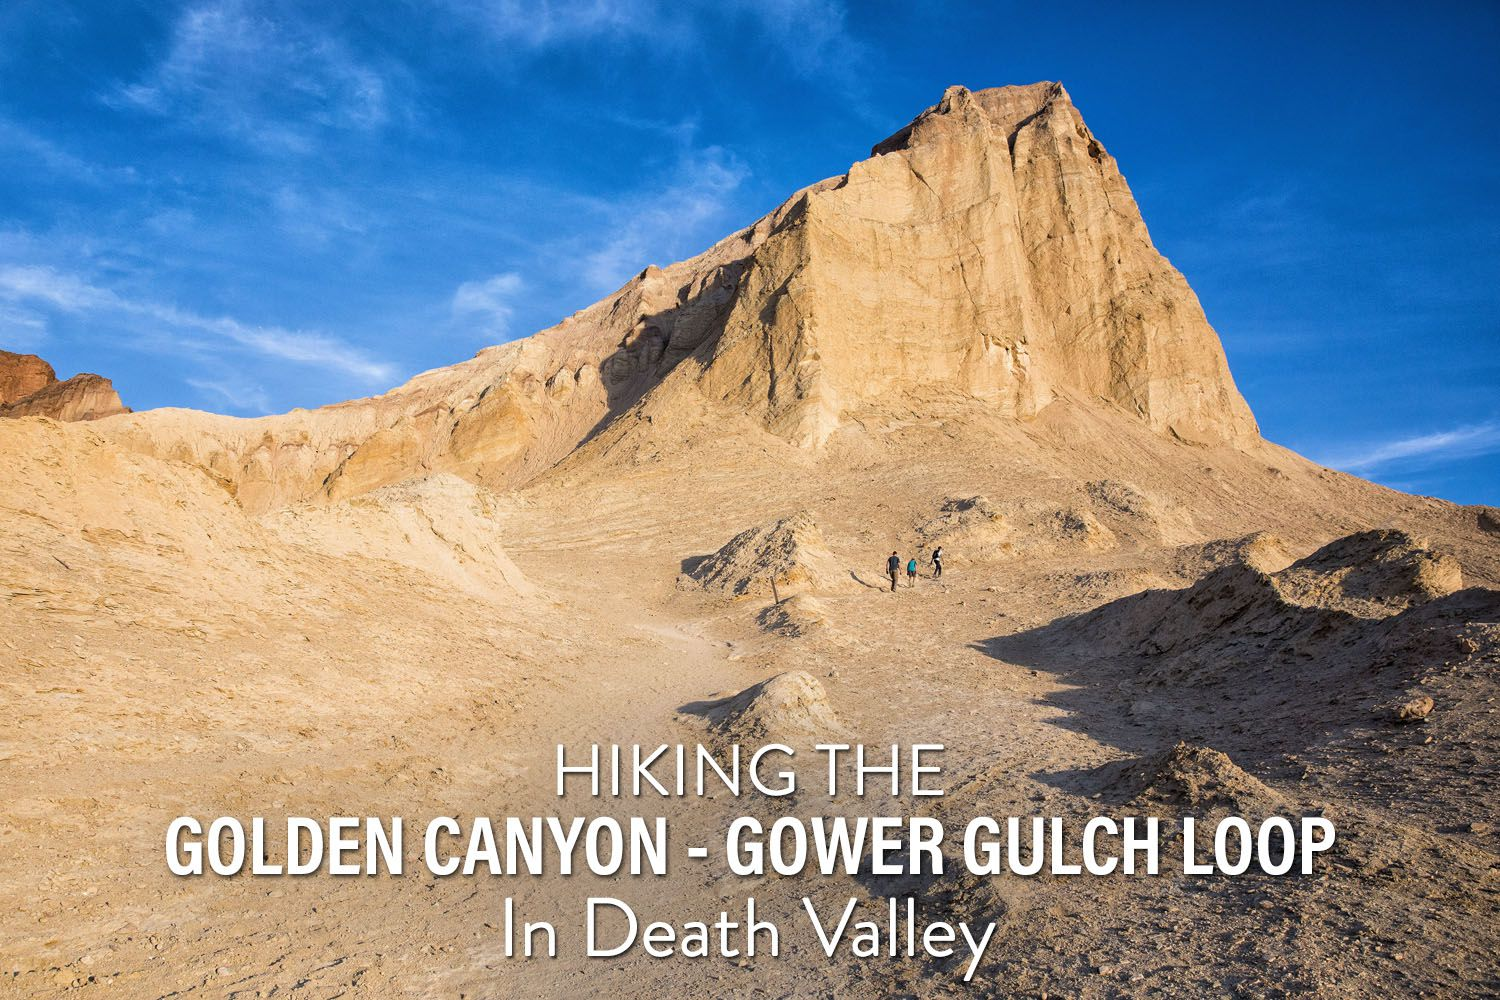 Gower Gulch Hike